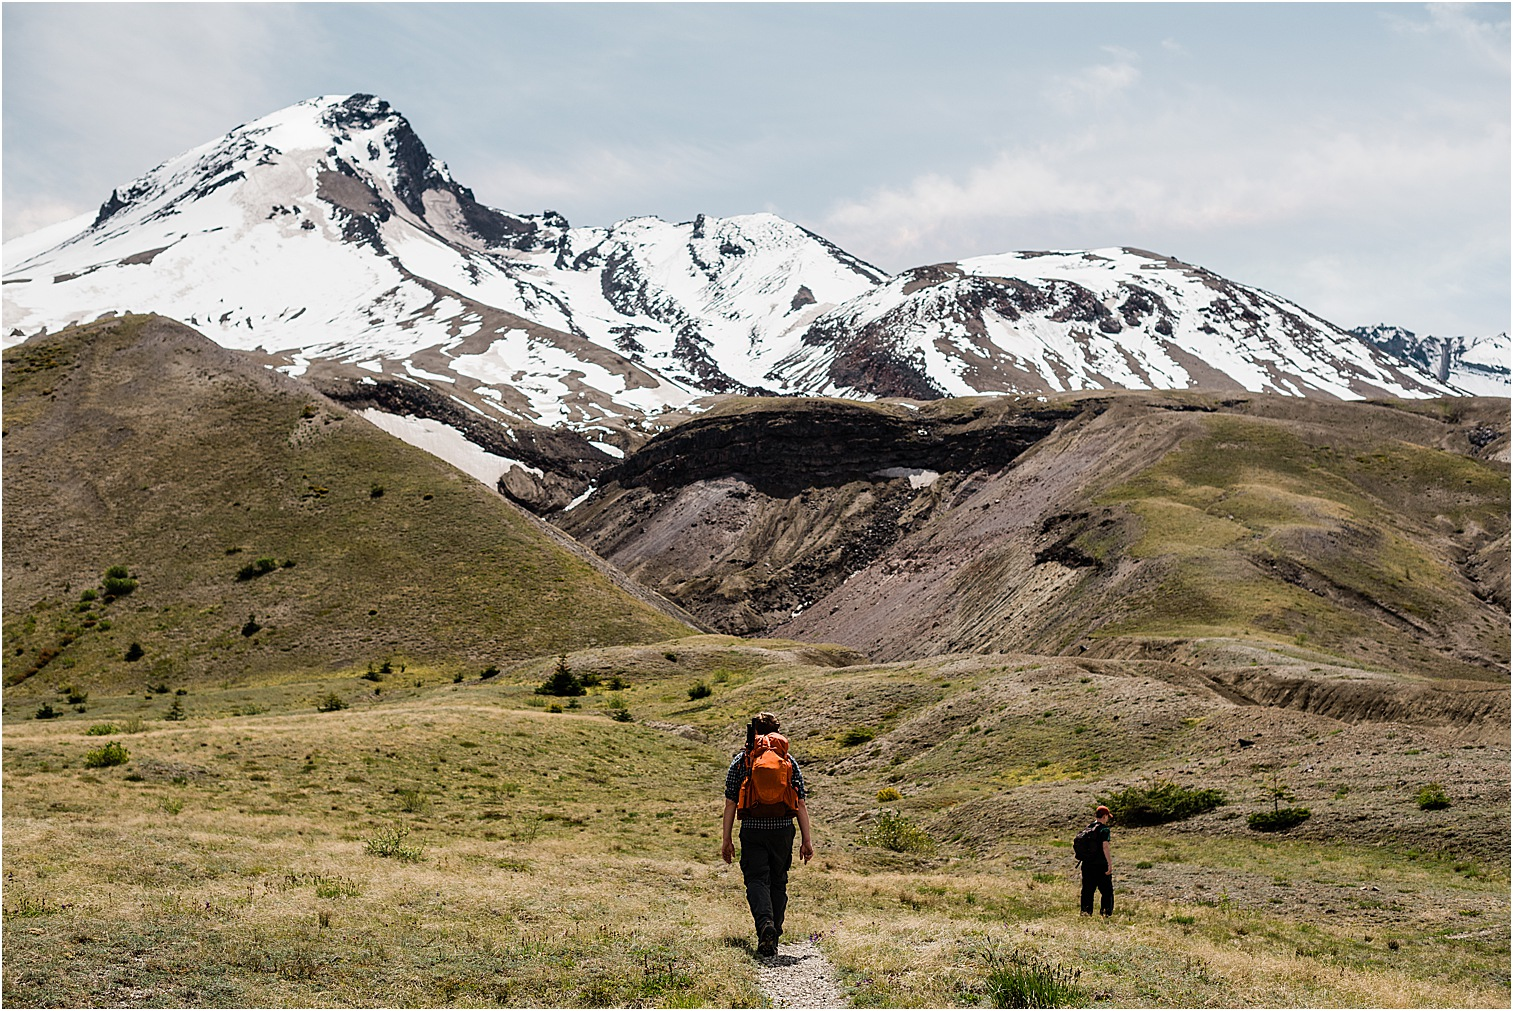 A hike through the alpine meadows of Mt St Helens. Image by Forthright Photo